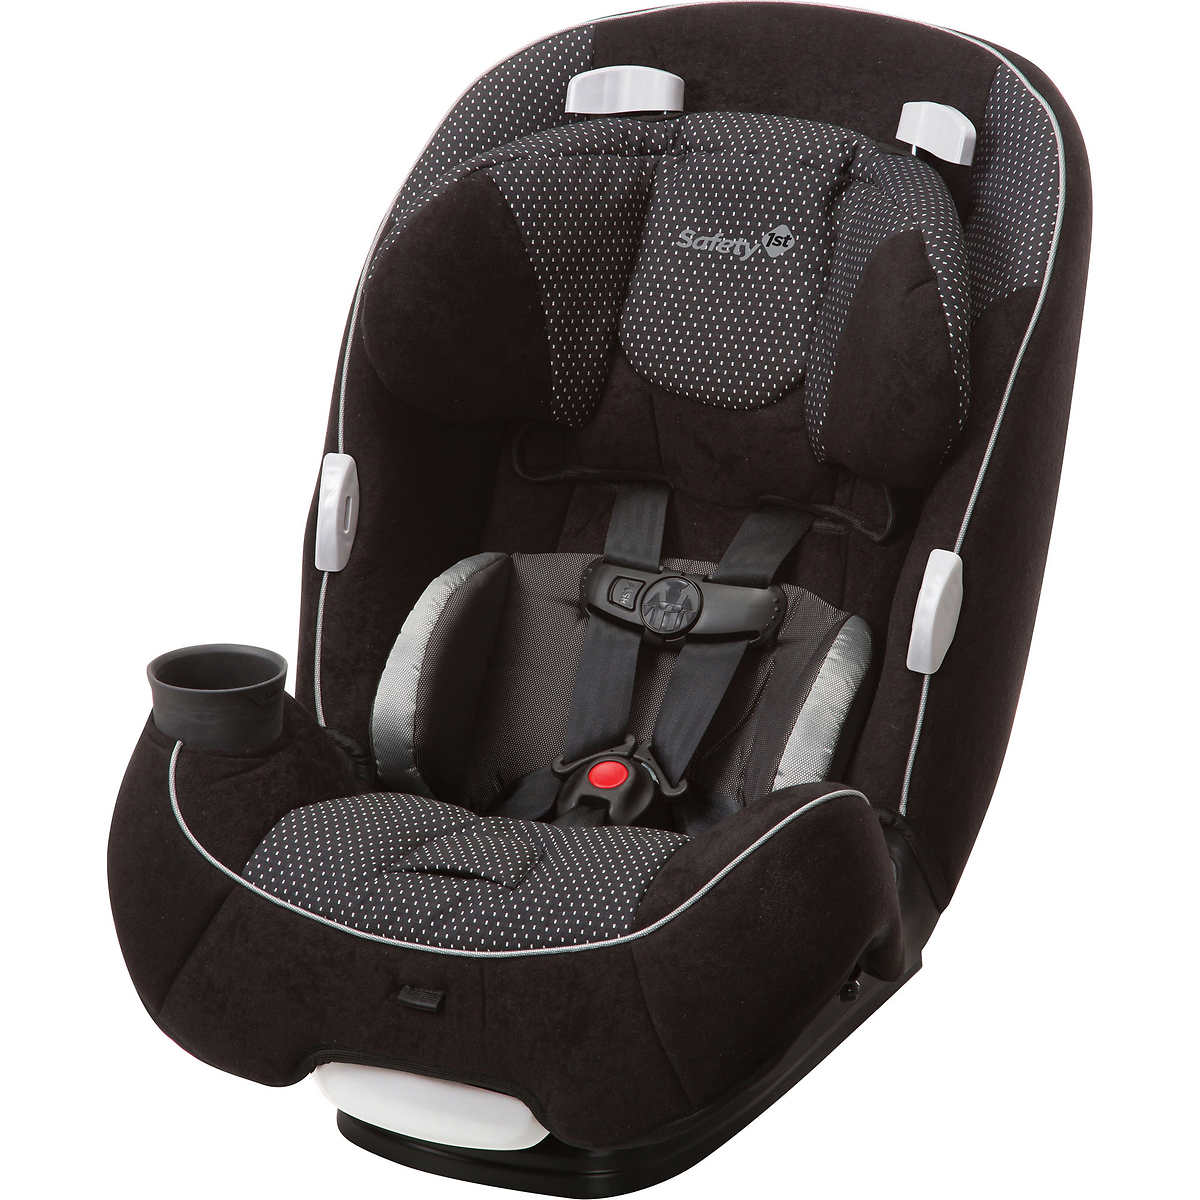 Safety 1st multifit 3 in1 car seat